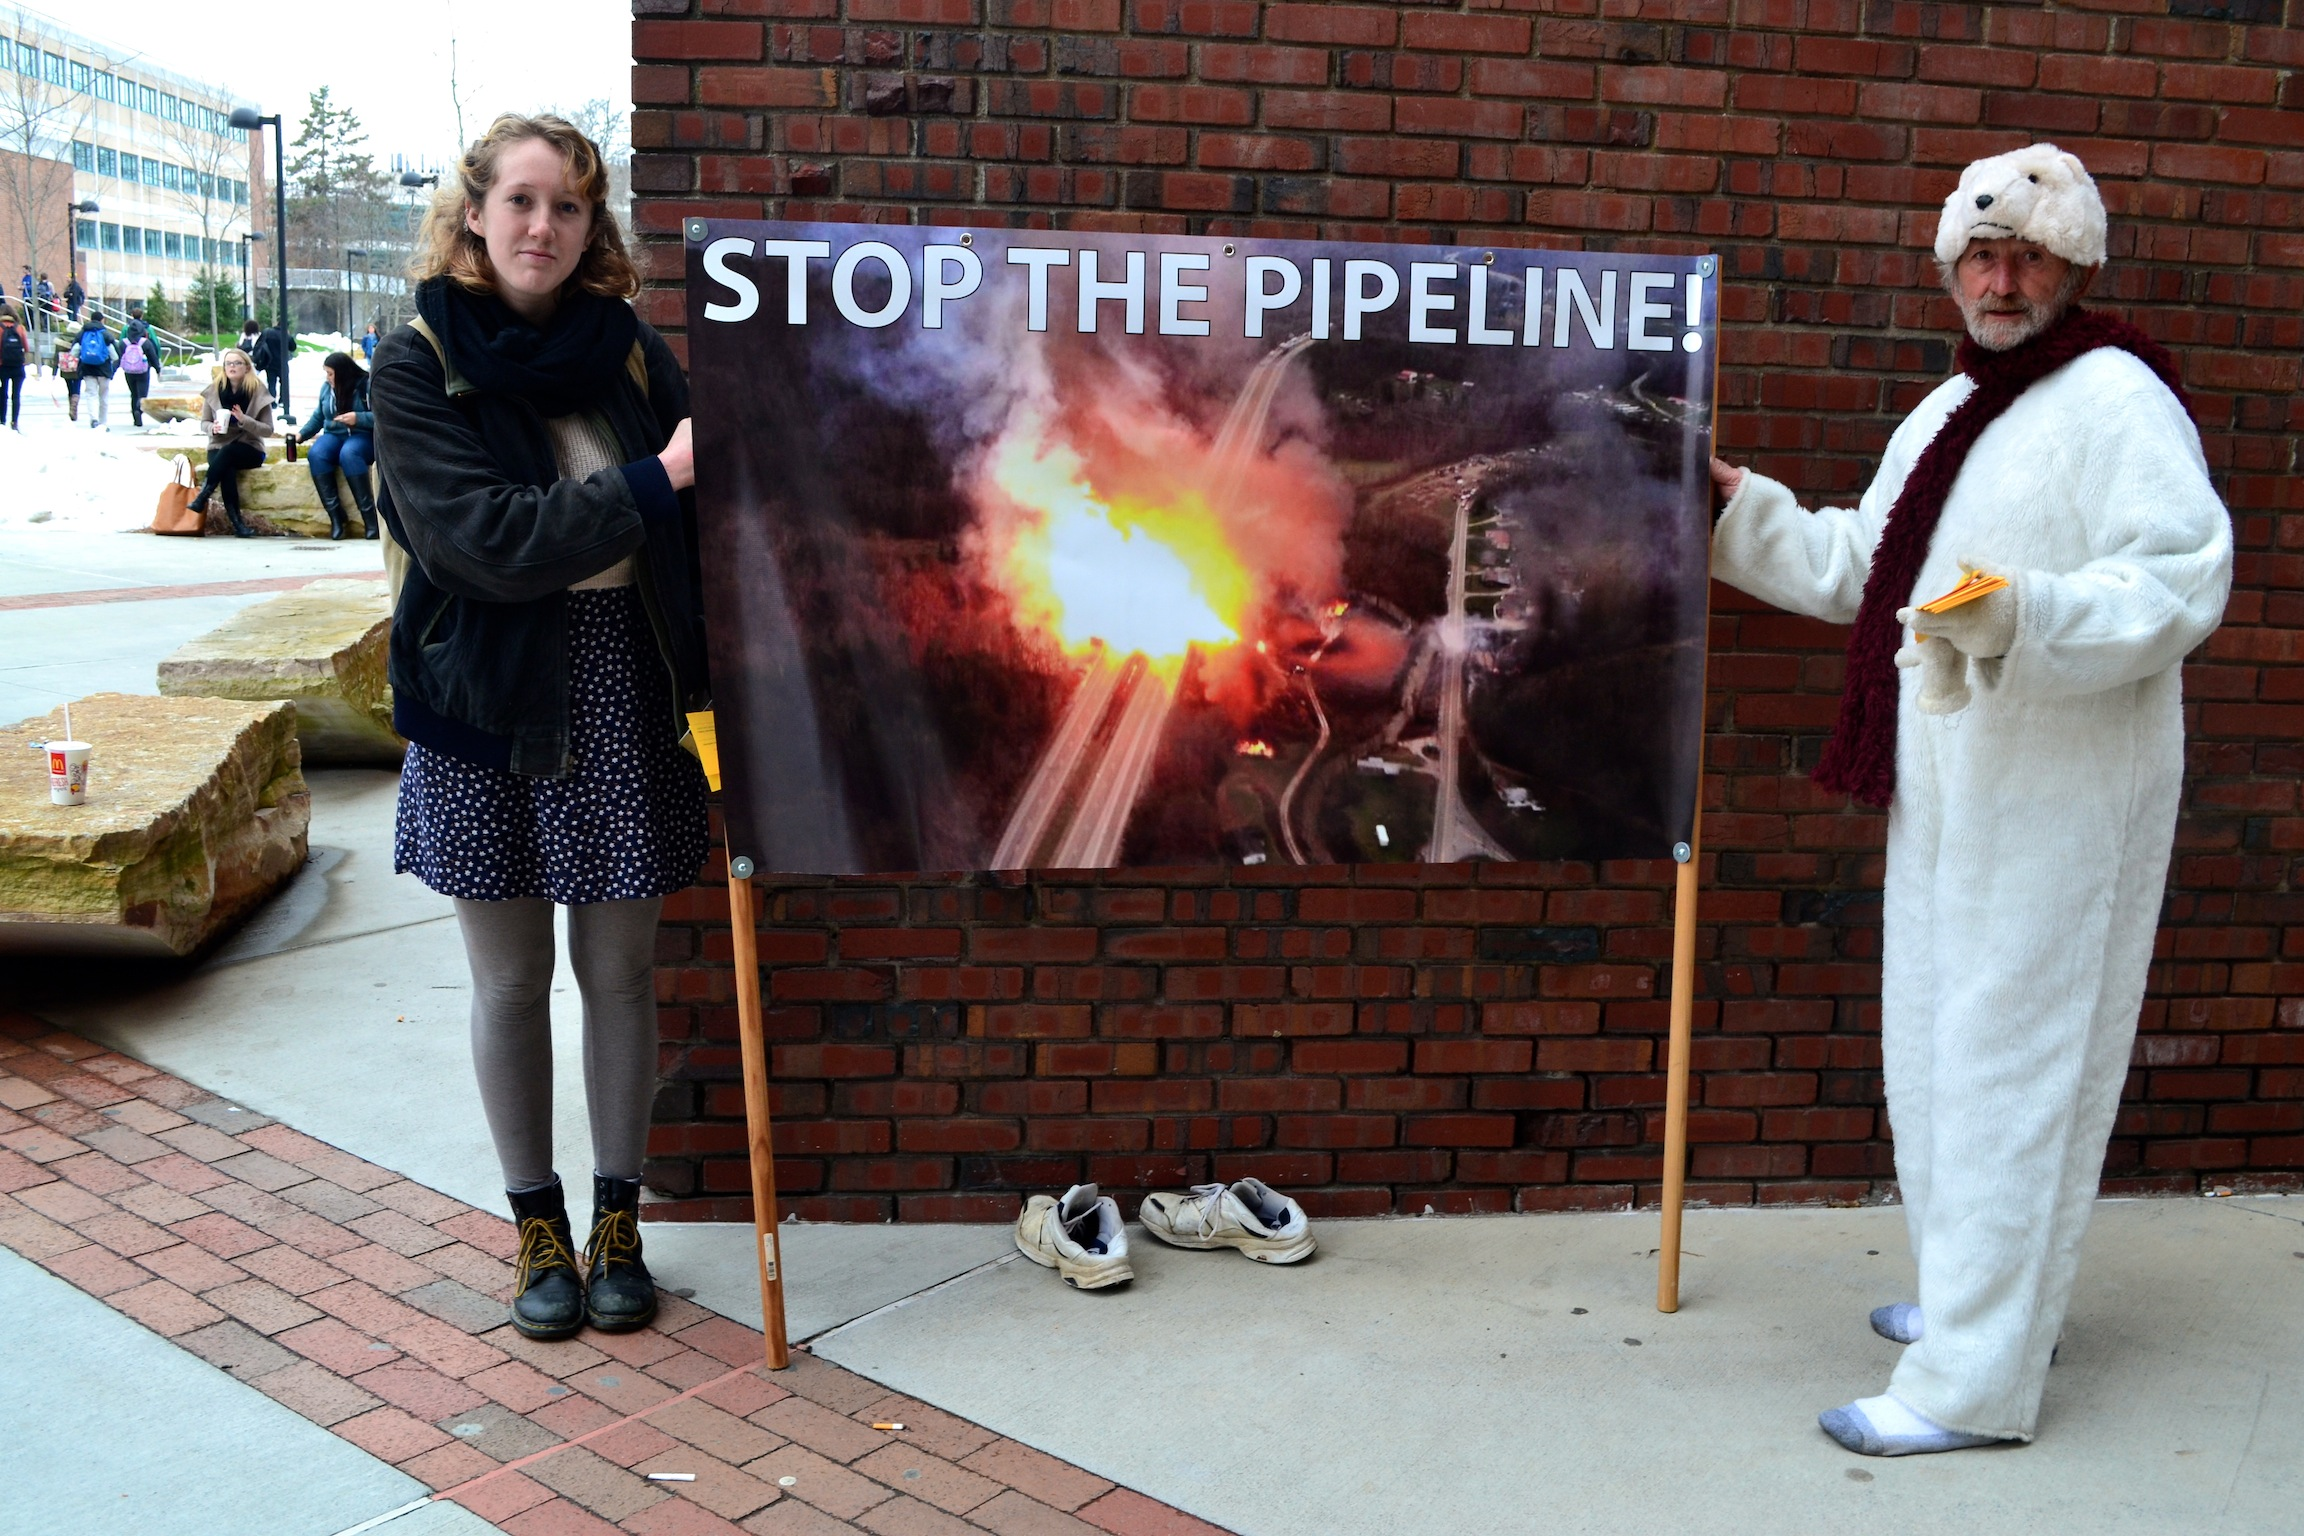 New Paltz Groups Organize Protest of Proposed Pipeline